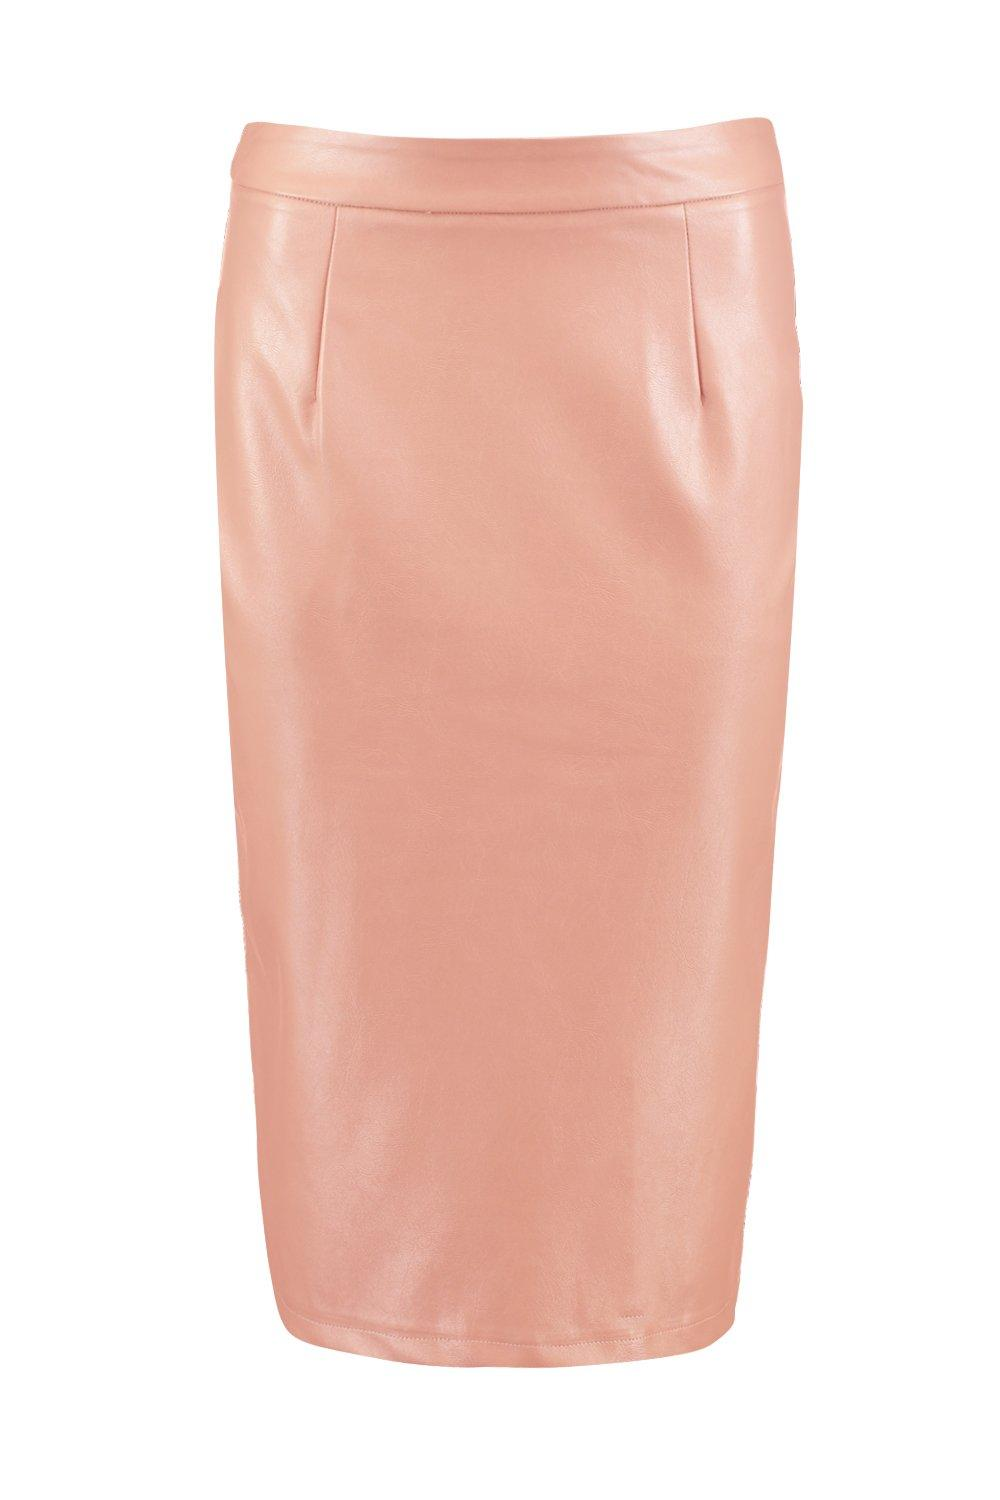 boohoo womens bahati leather look pencil midi skirt ebay